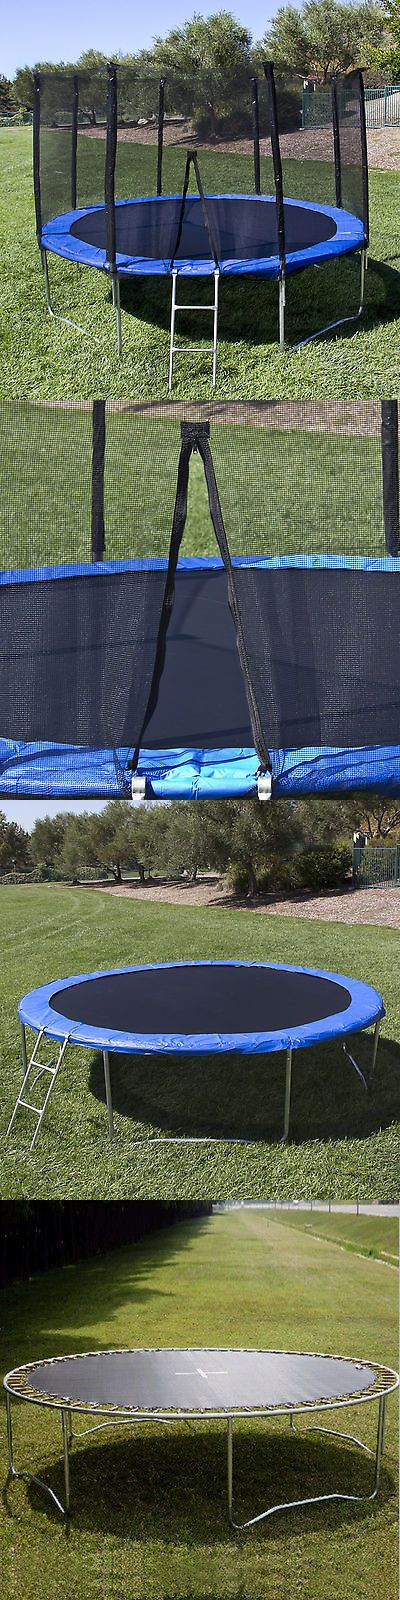 Trampolines 145999: 10Ft Trampoline Combo Bounce Jump Safety Enclosure Net W Spring Pad Ladder Us Mx -> BUY IT NOW ONLY: $195.89 on eBay!